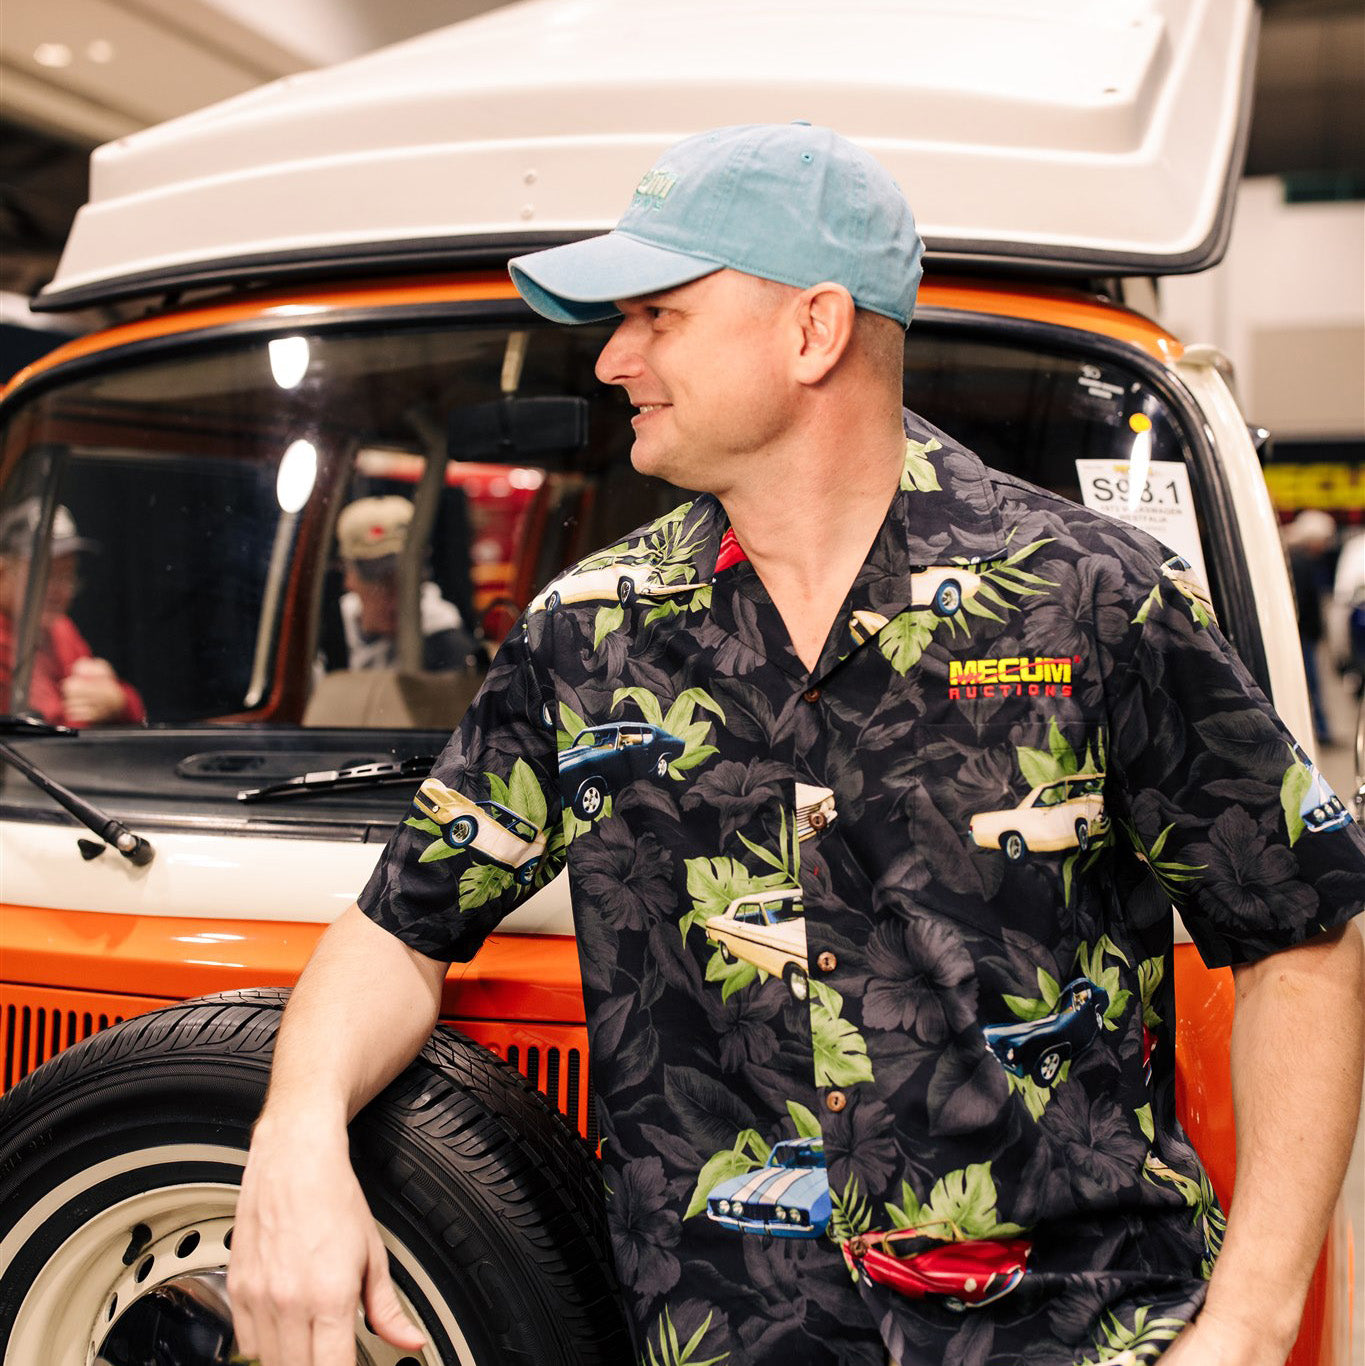 Man wearing 2020 Mecum Men's Hawaiian Shirt